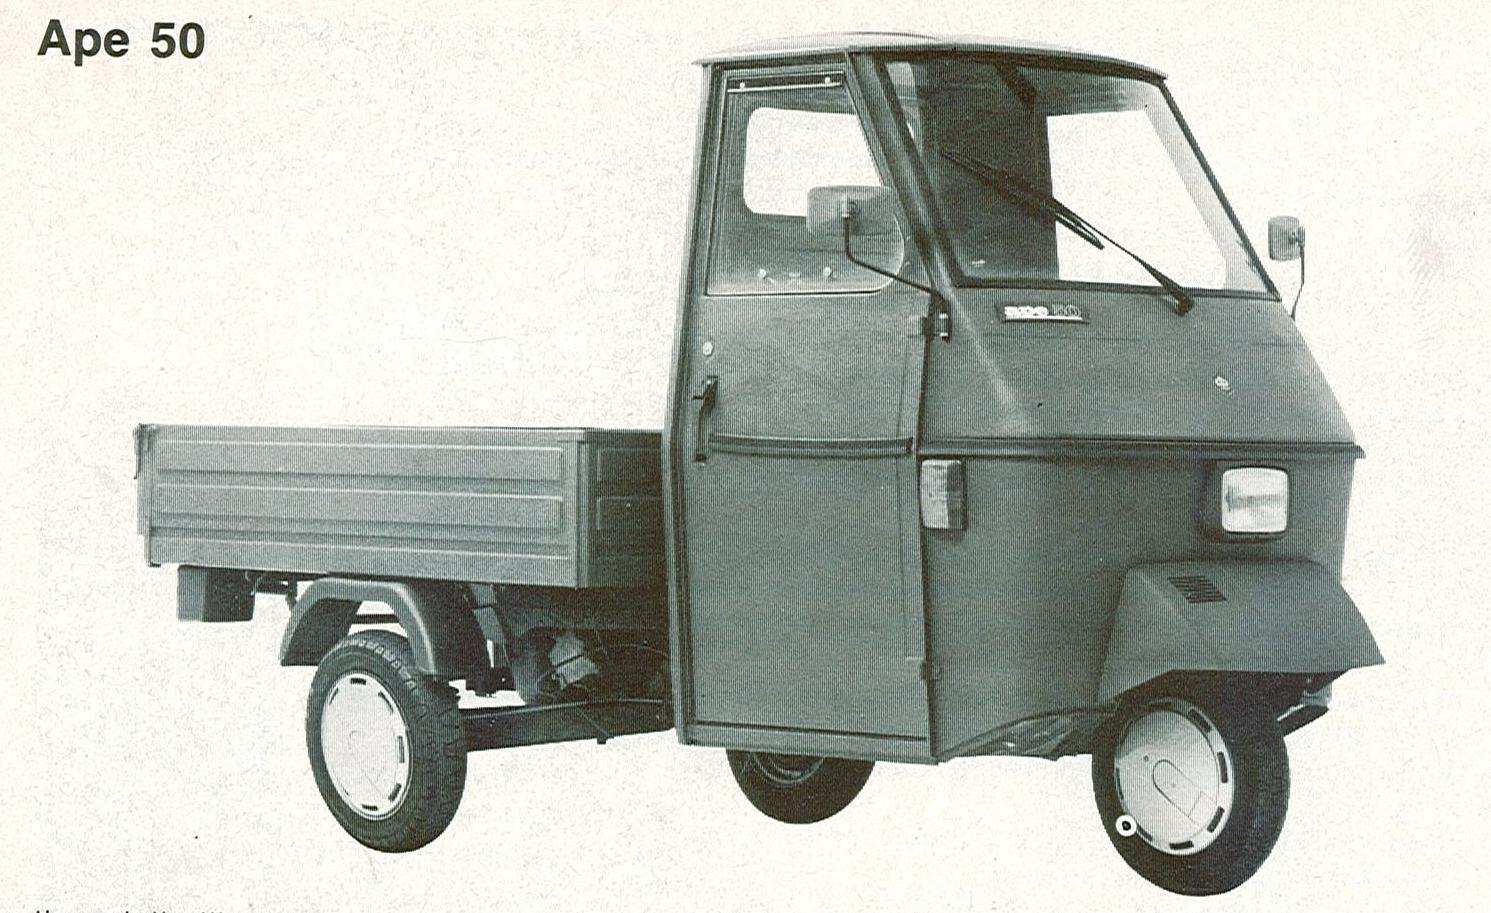 triporteur vespa piaggio ape vespacar vespadoc. Black Bedroom Furniture Sets. Home Design Ideas